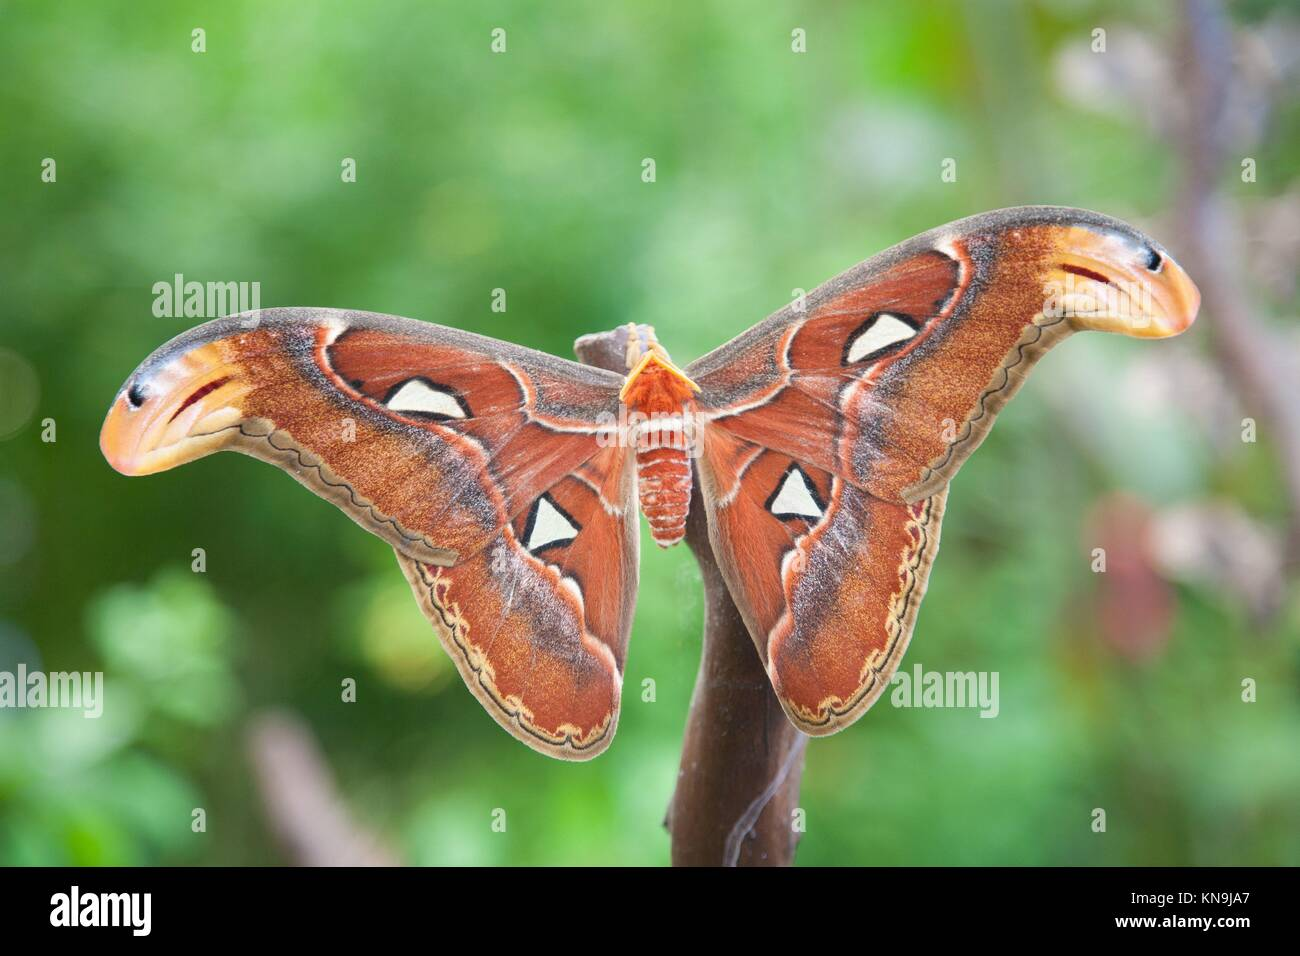 beautiful tropical orange, brown and white moth butterfly named Attacus Atlas, from Saturniidae family, also known - Stock Image